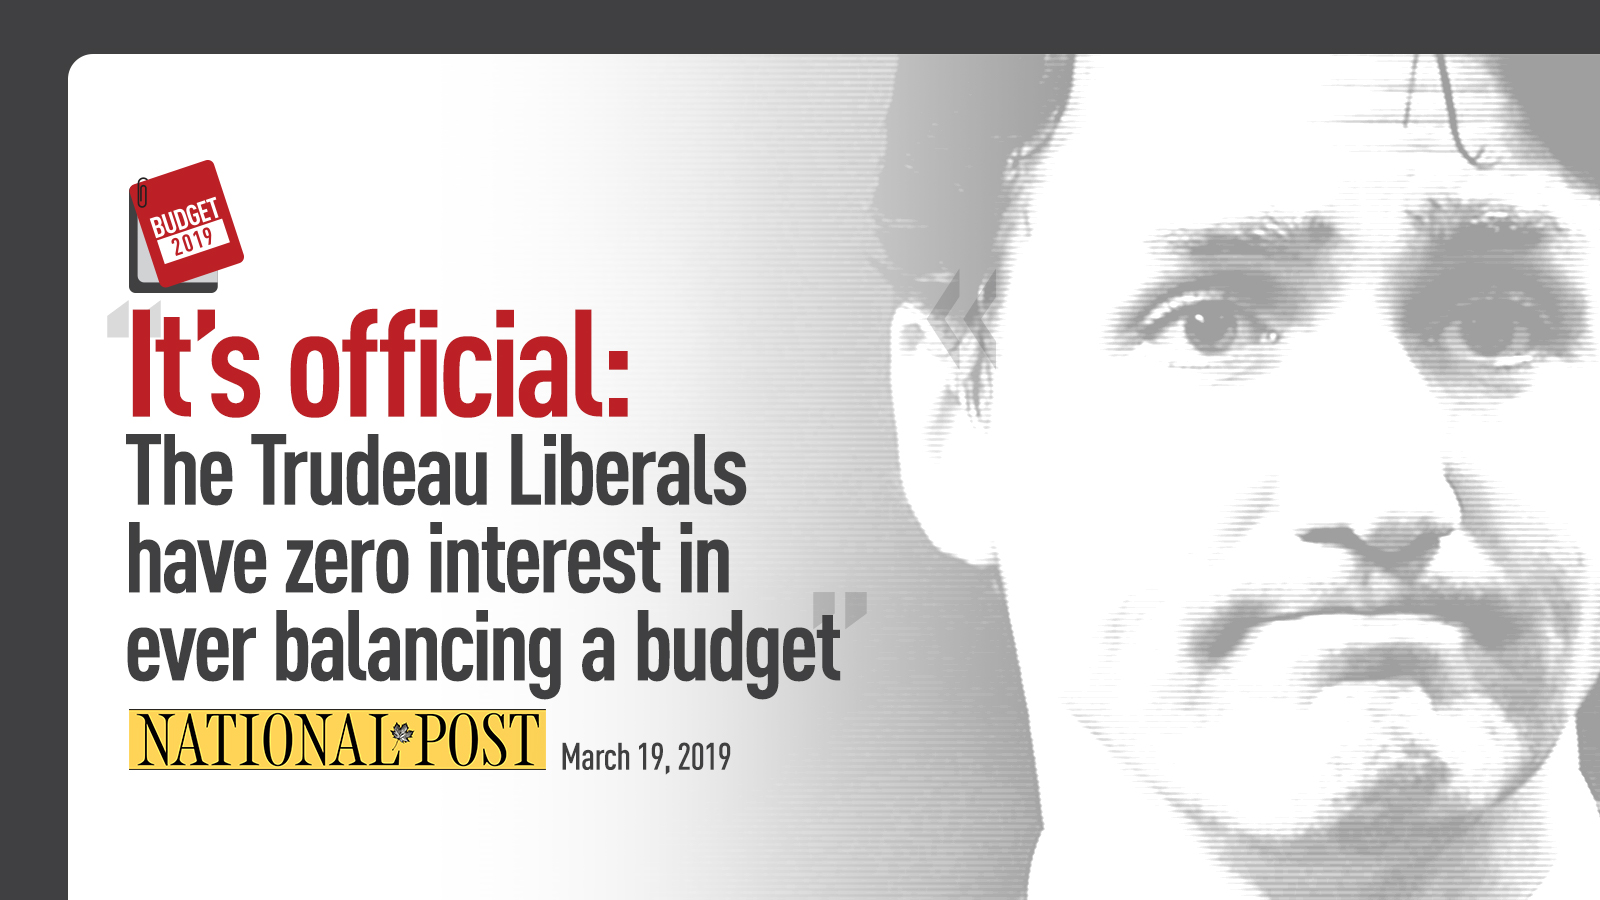 WARKENTIN RESPONDS TO THE LIBERAL BUDGET